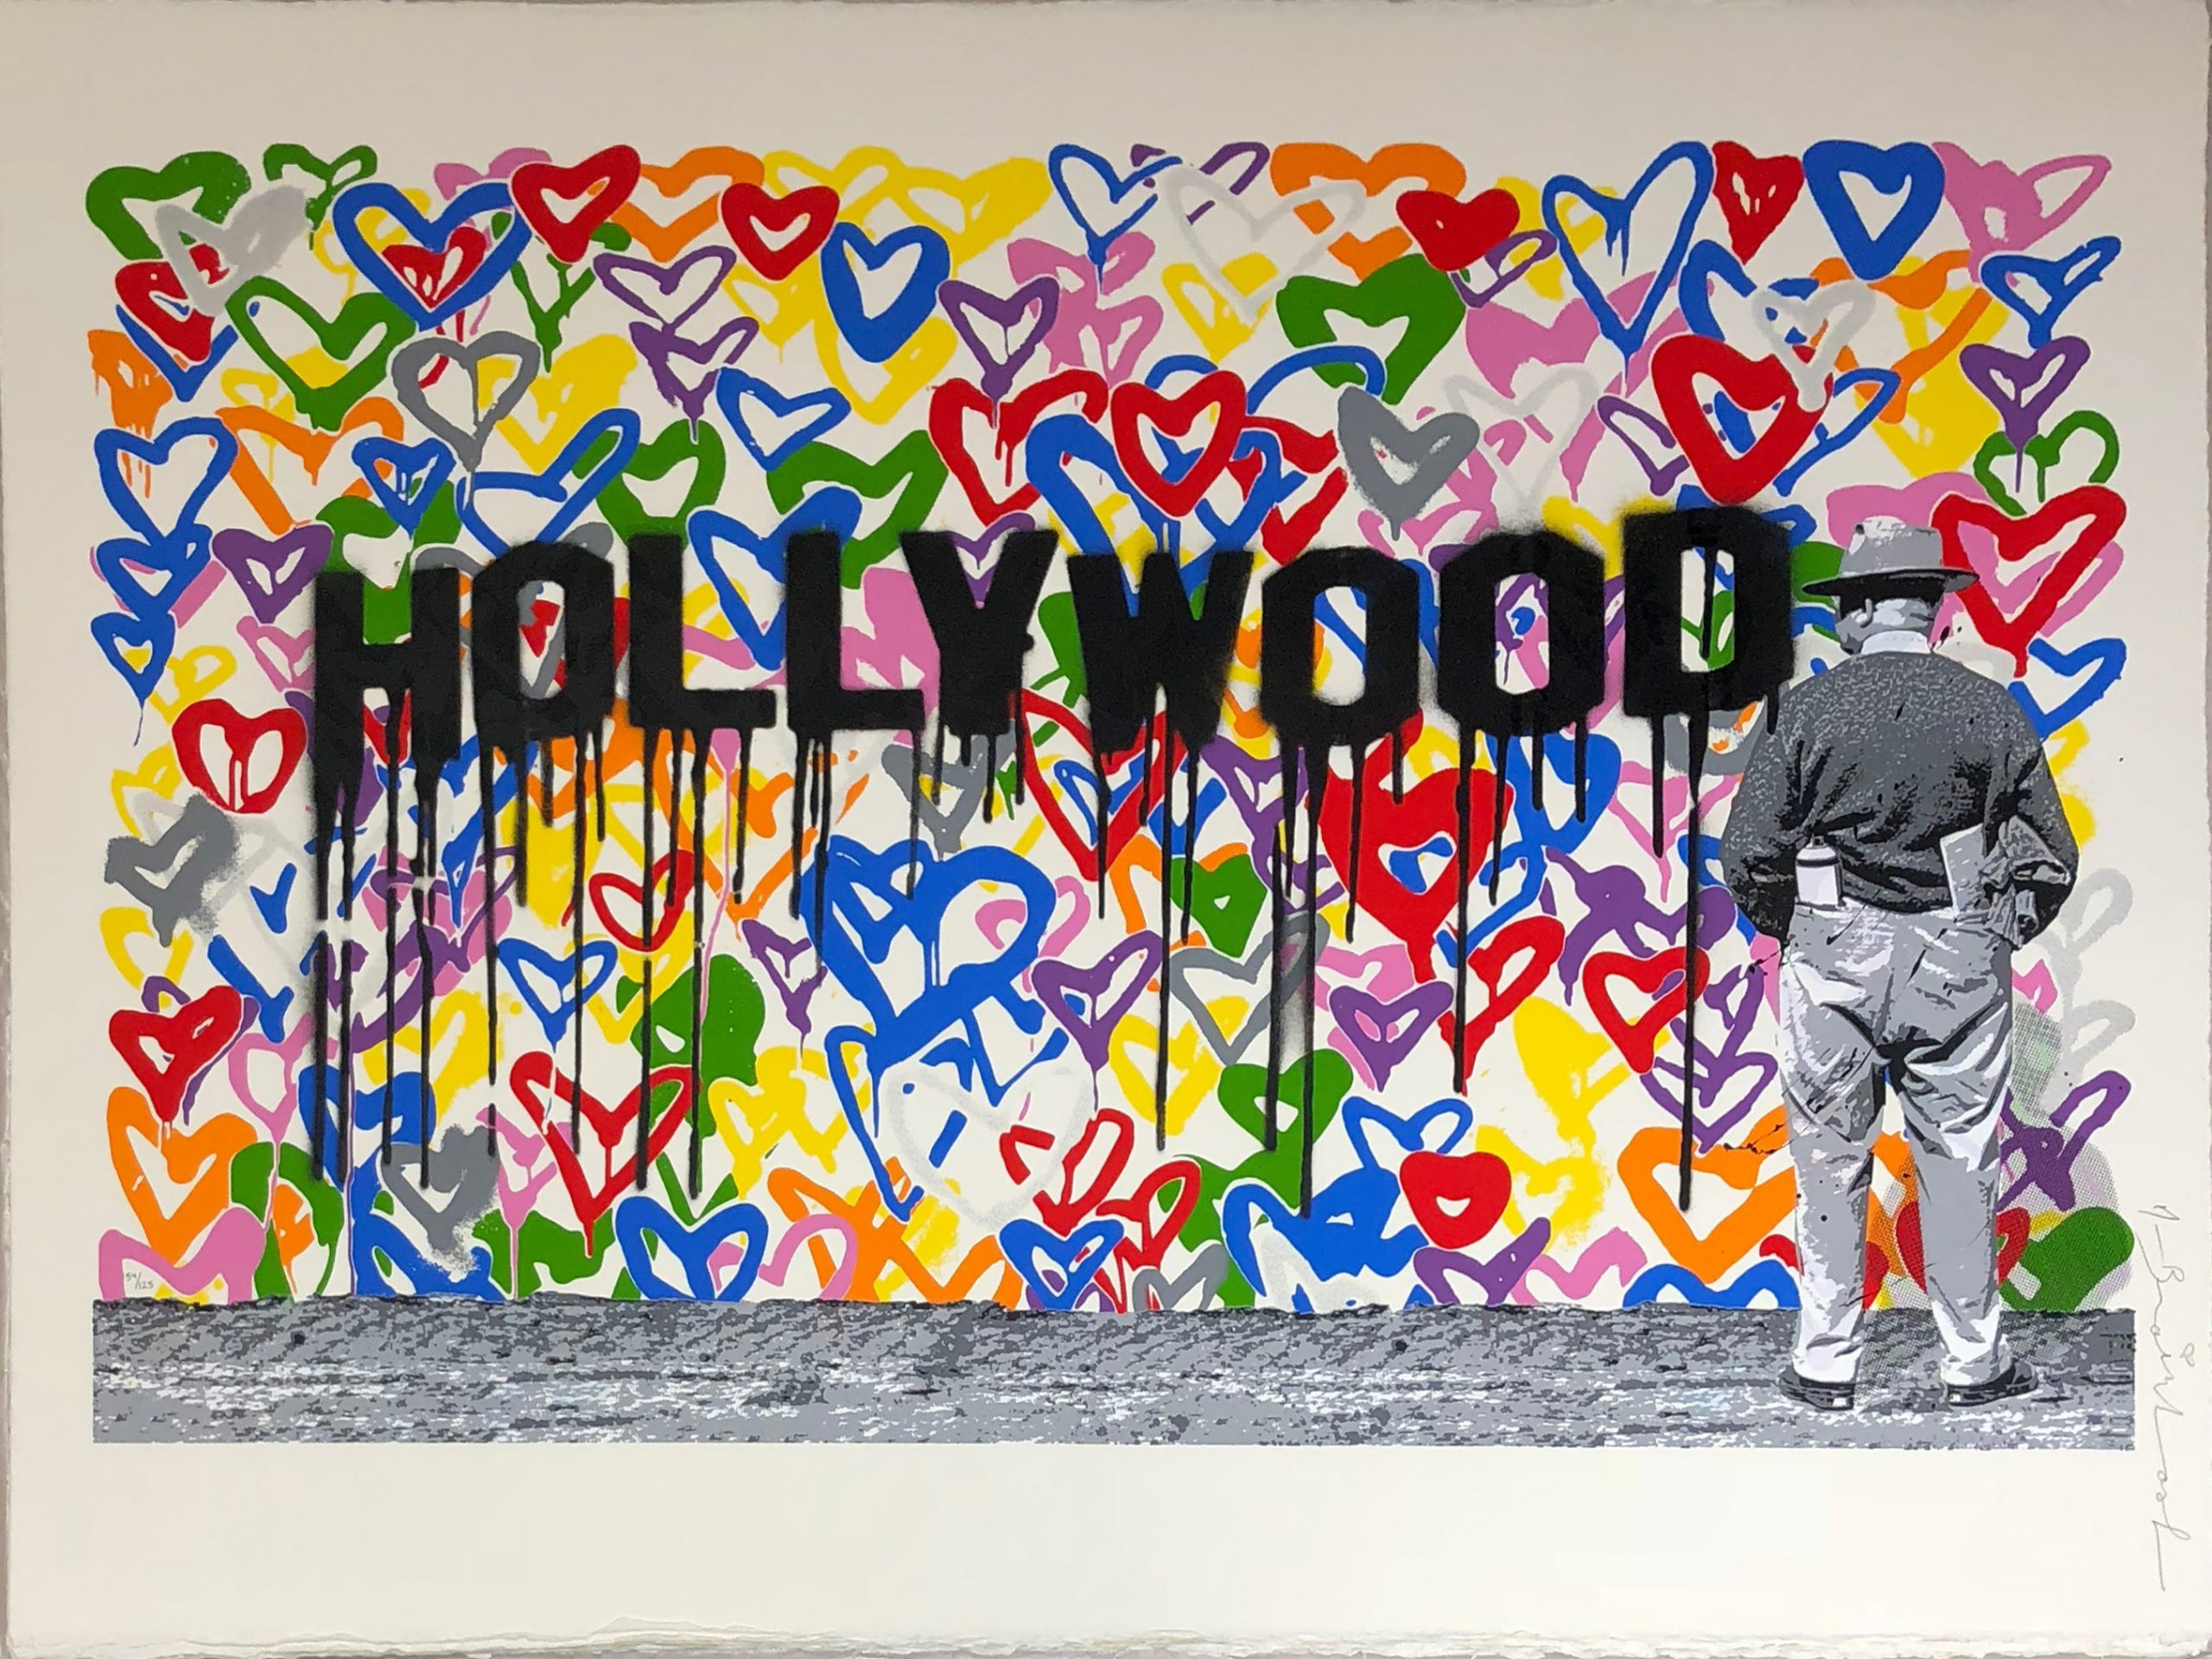 Hollywood by Mr Brainwash